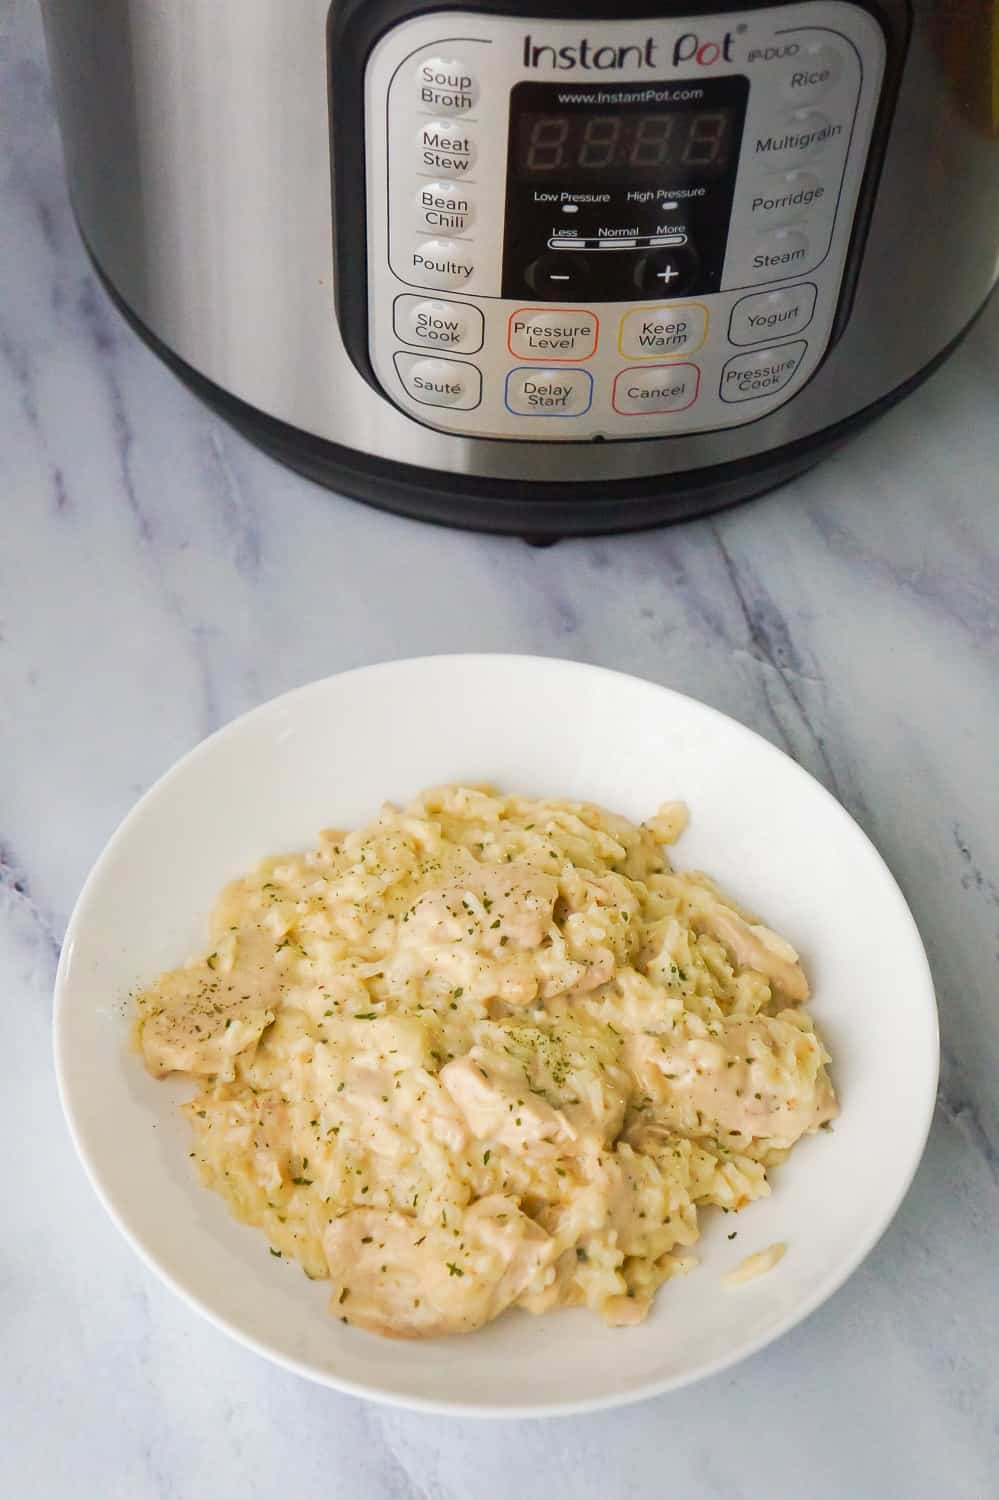 Instant Pot Garlic Parmesan Chicken and Rice is an easy chicken dinner recipe perfect for busy weeknights. This chicken dish is rich and creamy and loaded with Parmesan cheese.